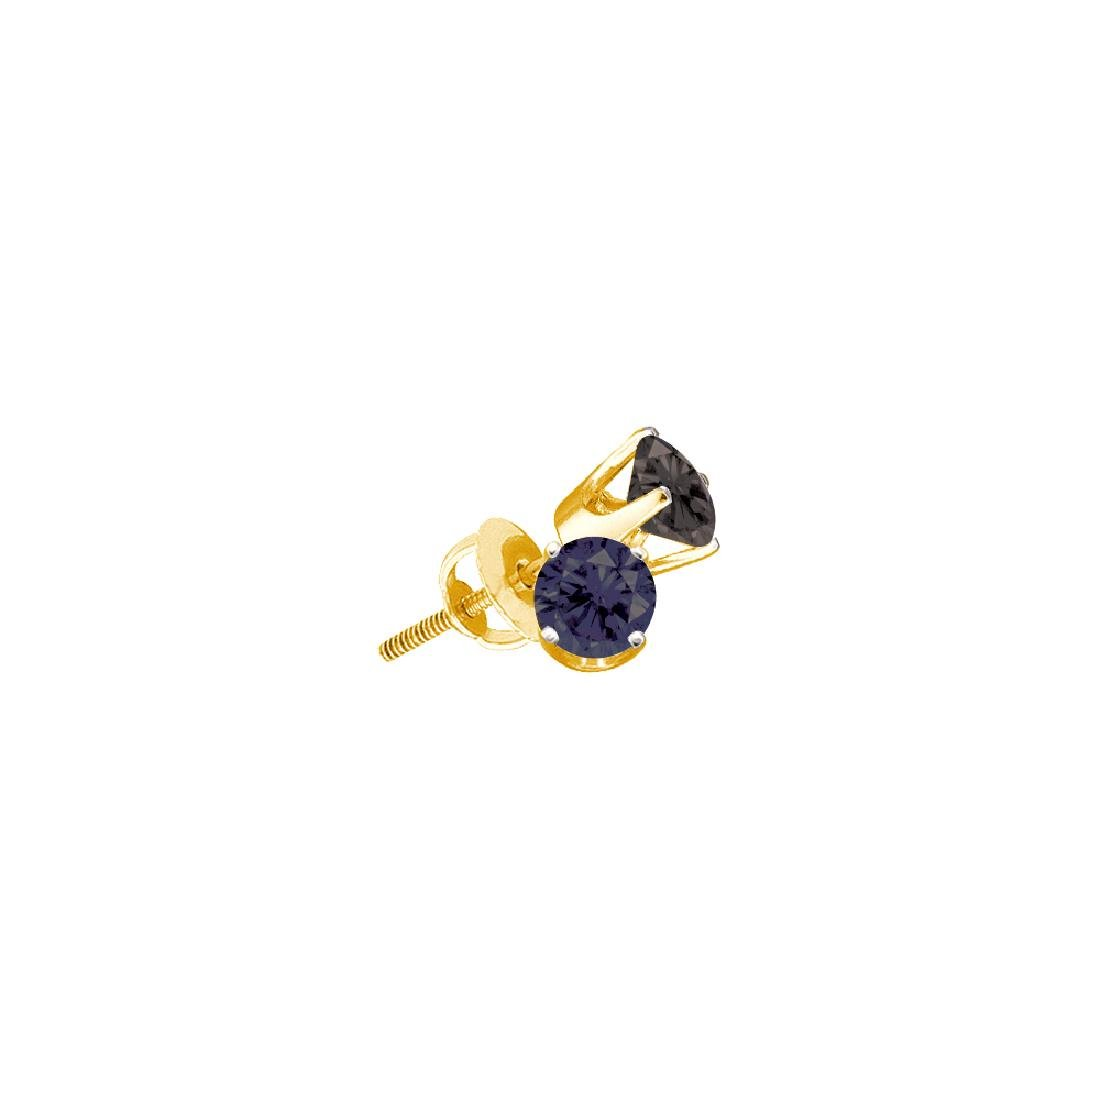 0.75 CTW Black Colored Diamond Solitaire Earrings 14K